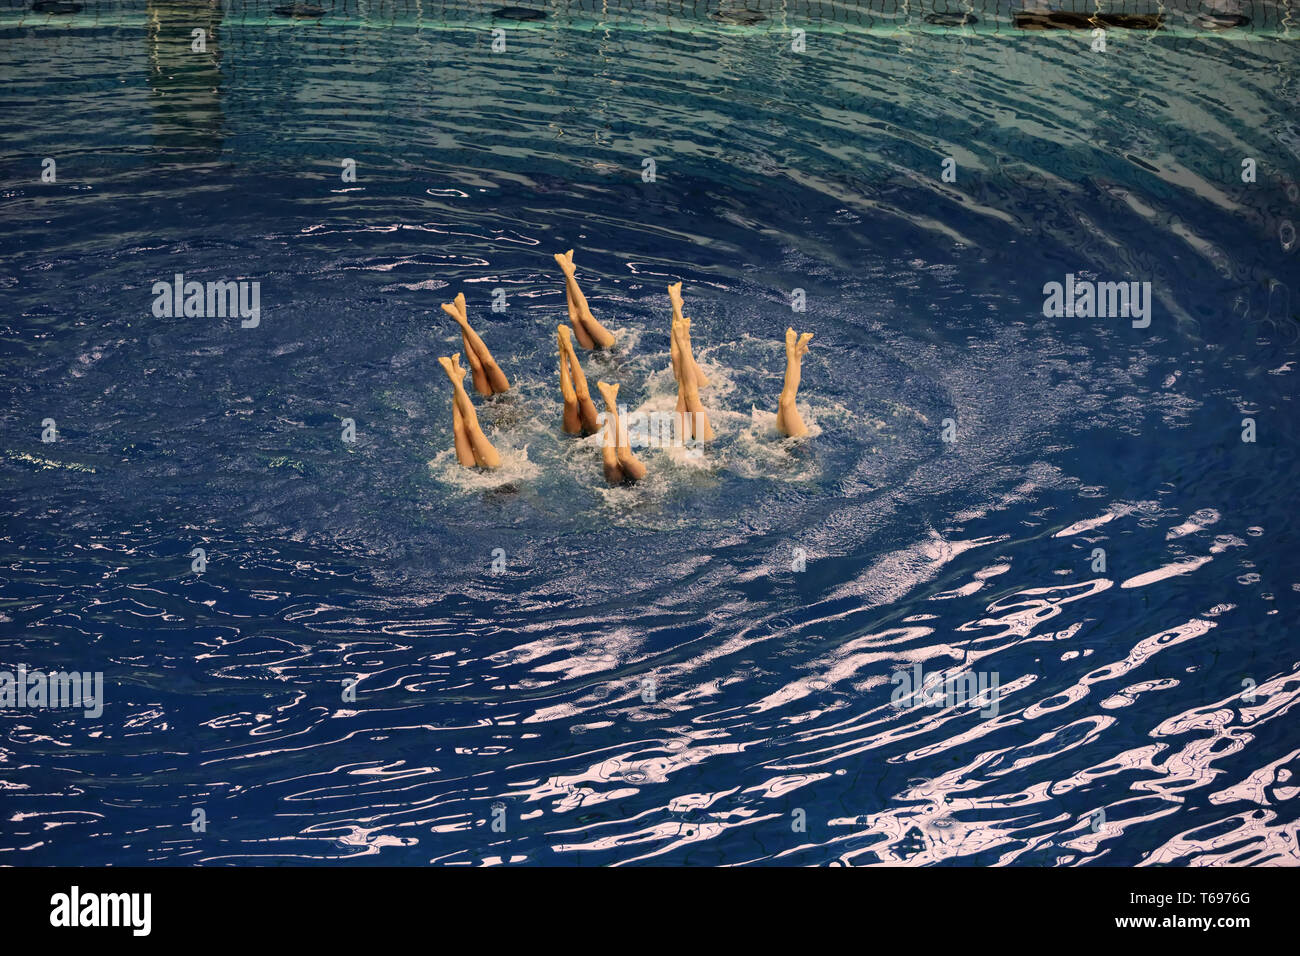 Women#39;s synchronized swimming in the pool - Stock Image